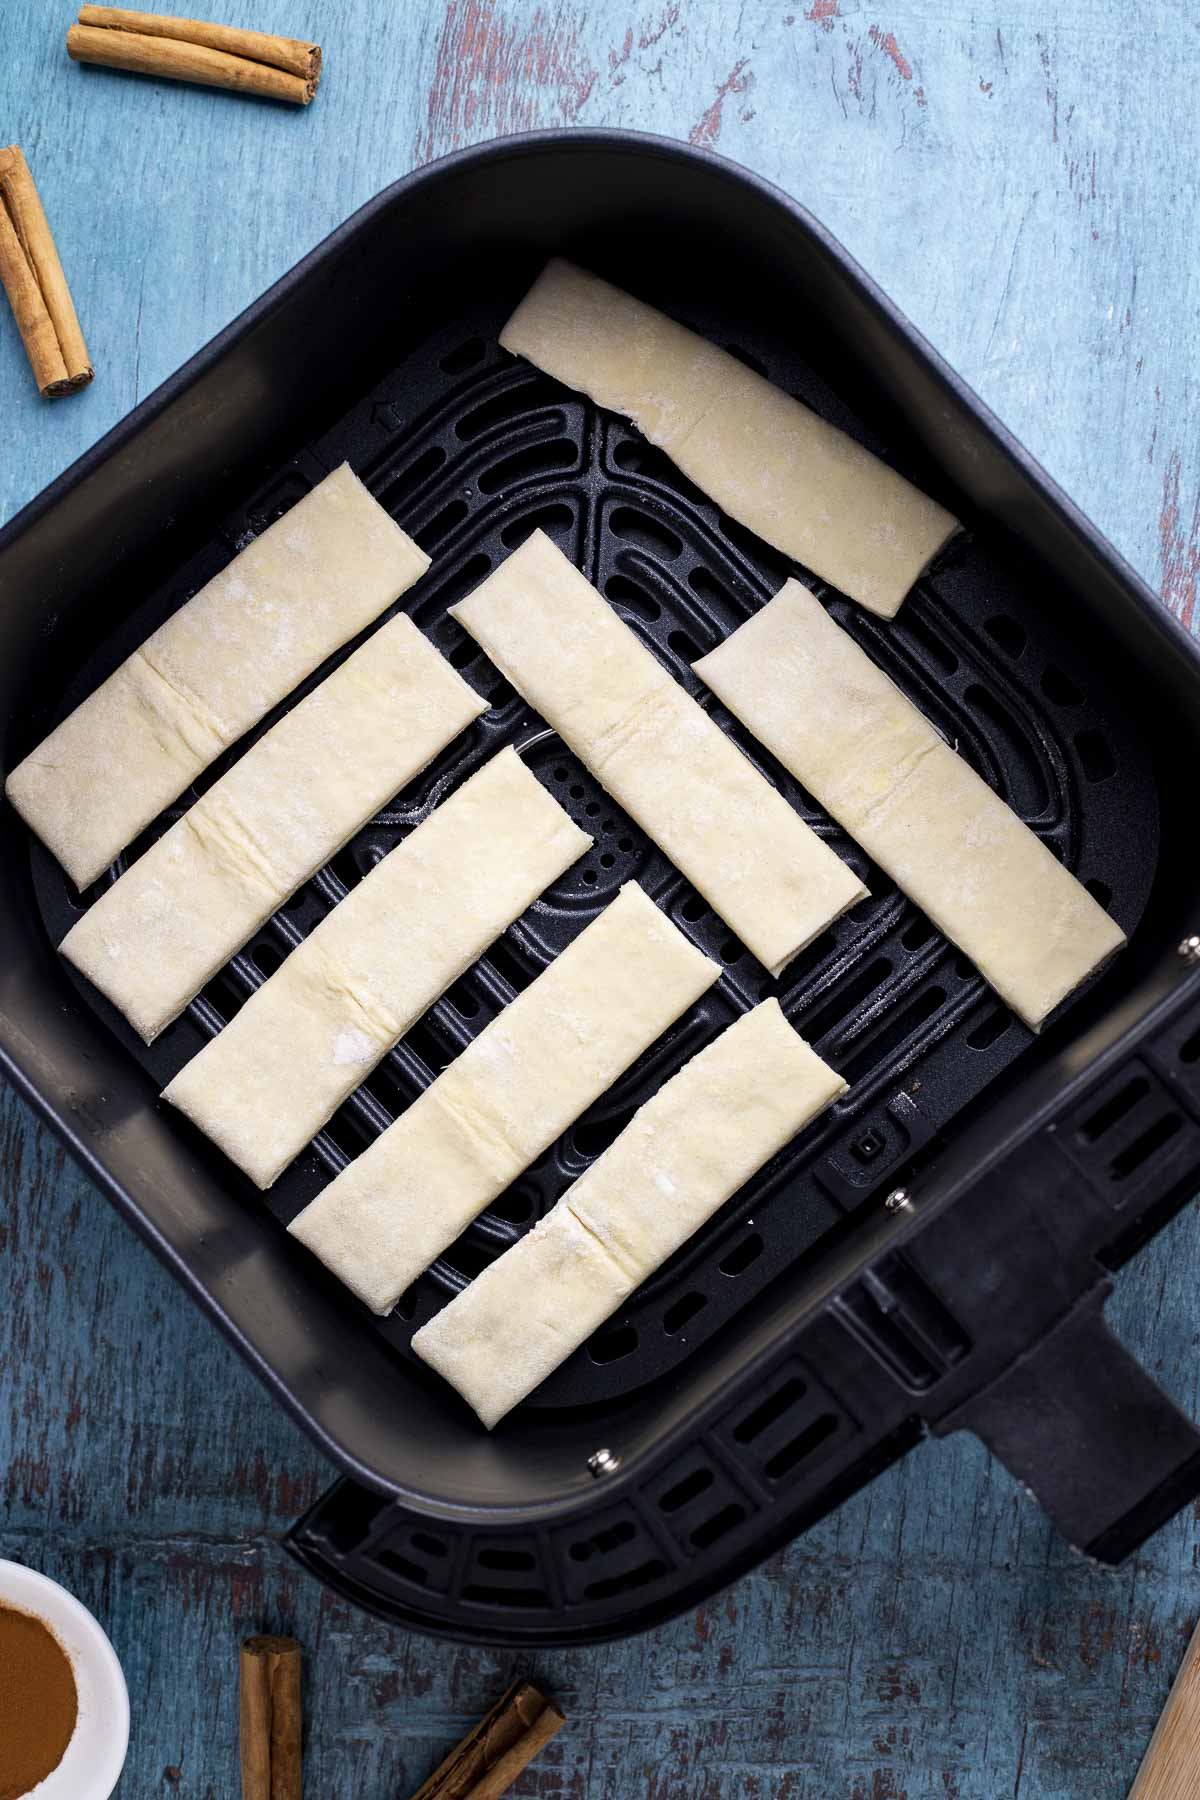 Puff pastry strips added into an air fryer basket.